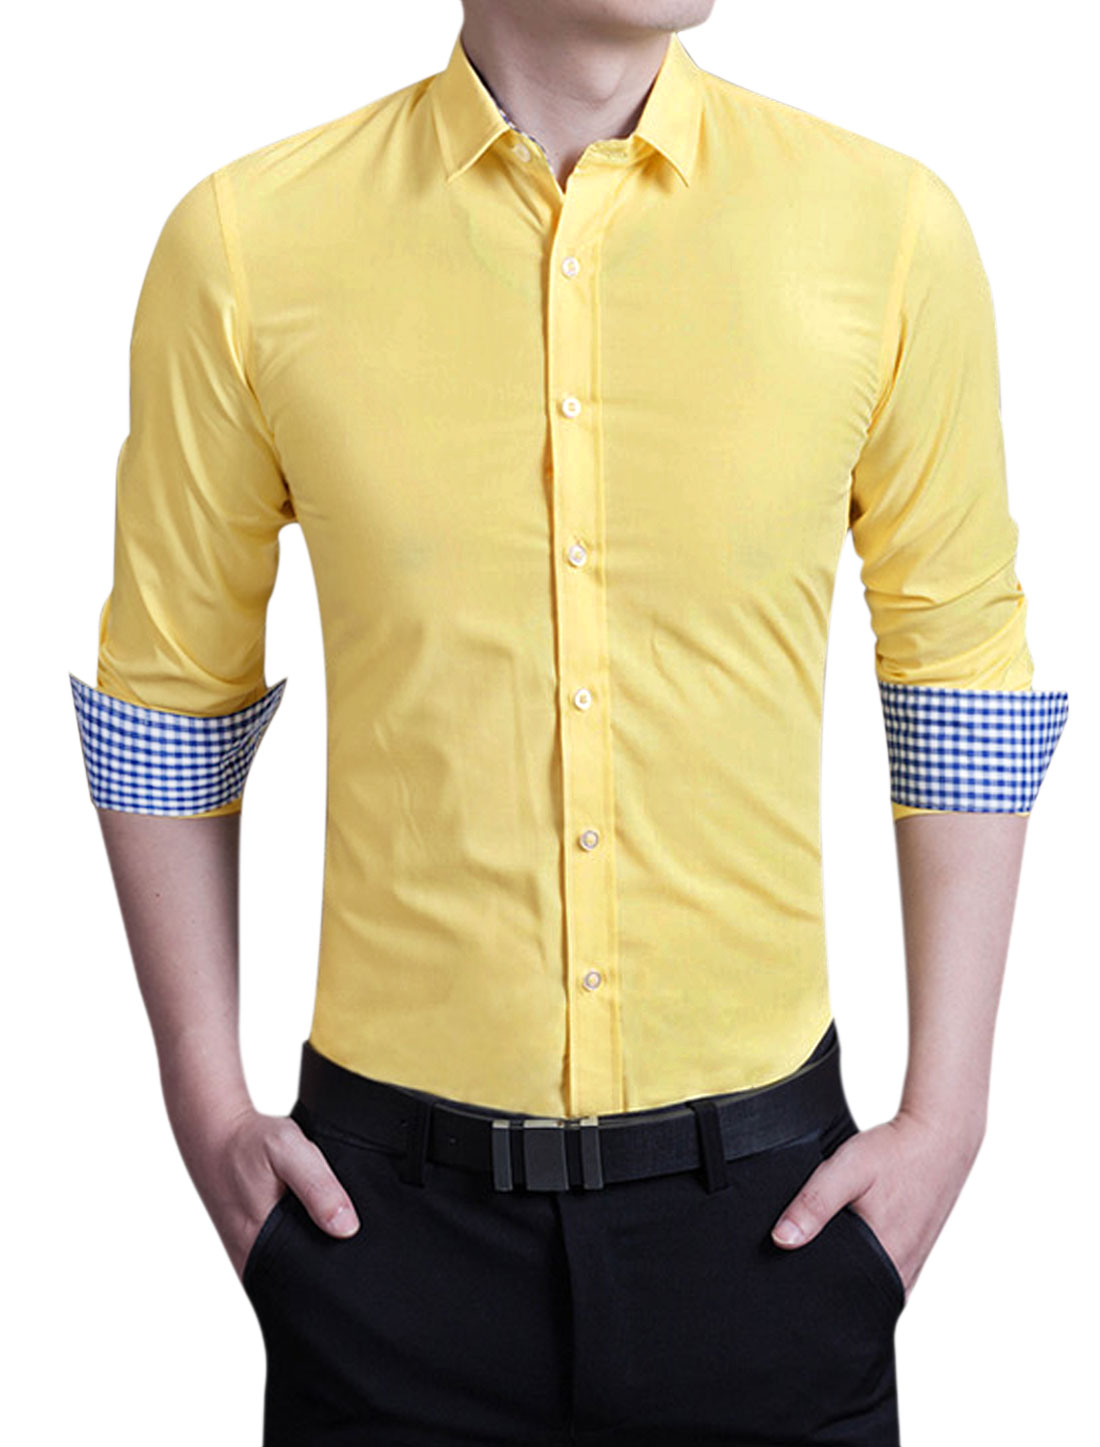 Men Point Collar Round Edge Slim Fit Business Shirt Yellow M